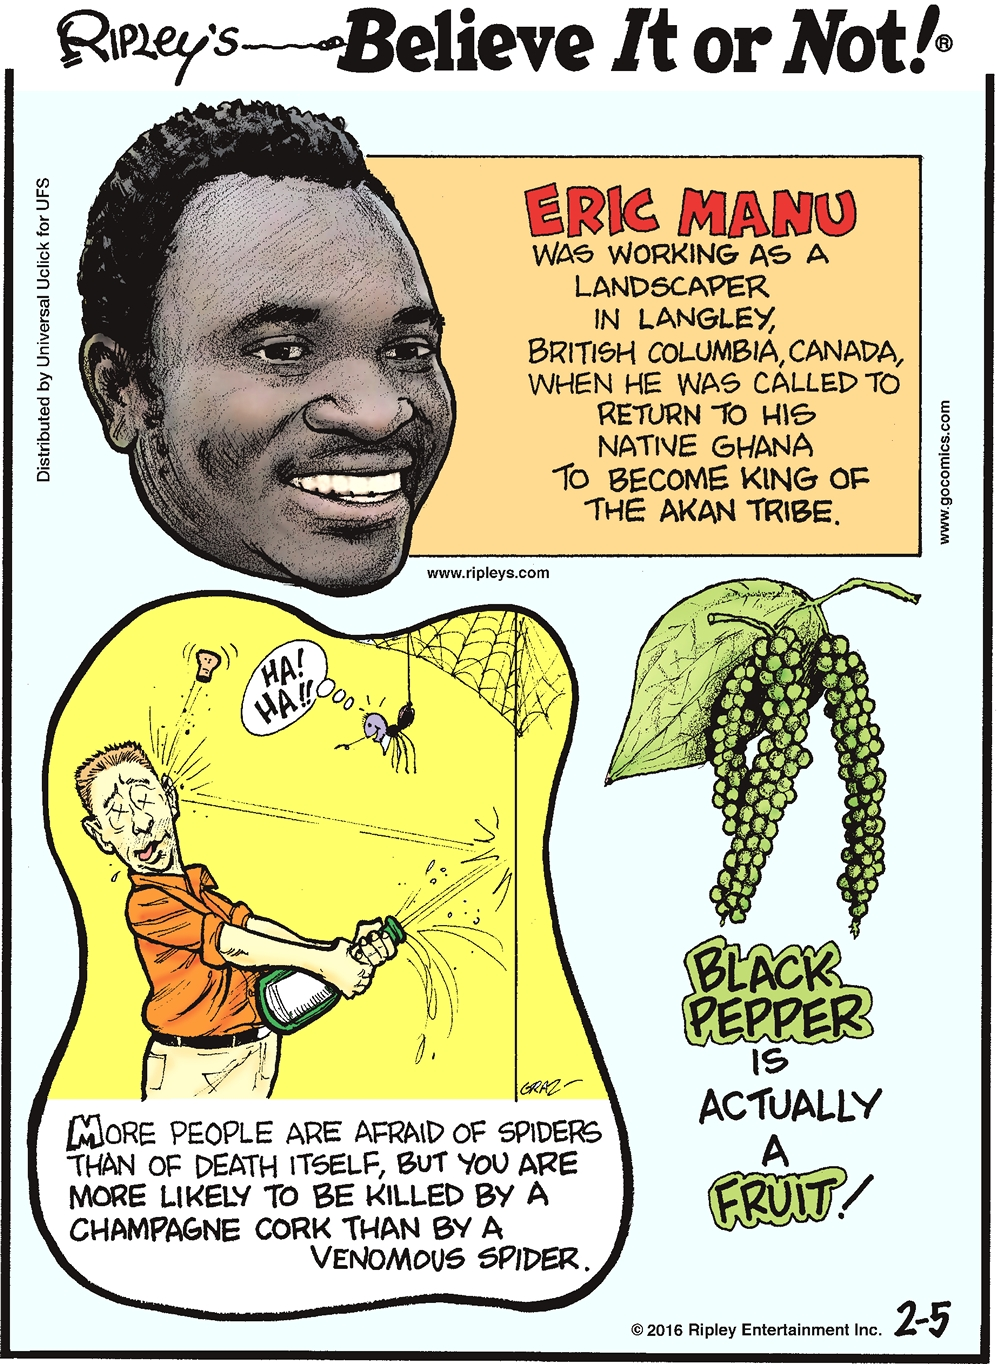 Eric Manu was working as a landscaper in Langley, British Columbia, Canada when he was called to return to his native Ghana to become king of the Akan tribe. -------------------- More people are afraid of spiders than of death itself, but you are more likely to be killed by a champagne cork than by a venomous spider. -------------------- Black pepper is actually a fruit!